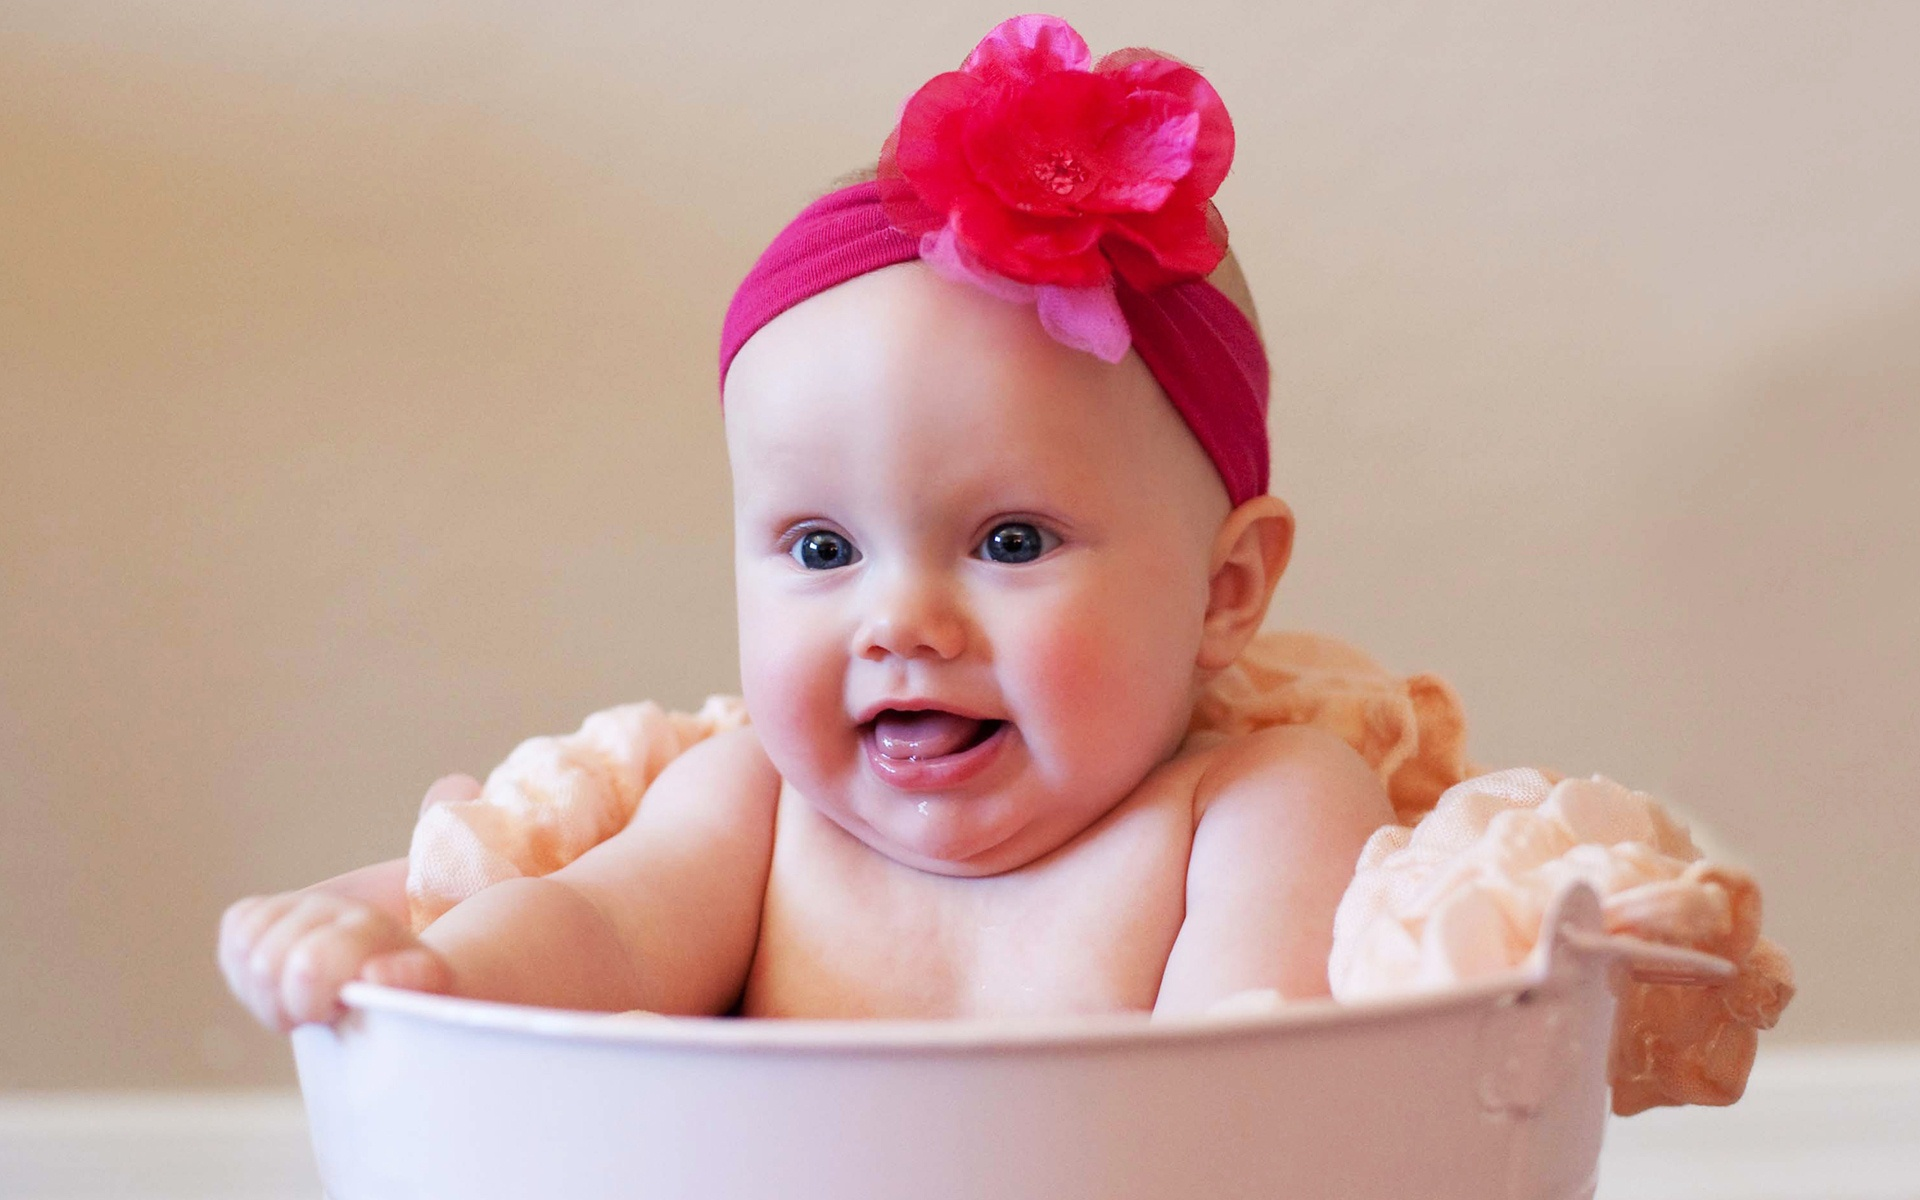 Free_wallpaper_of_baby__a_cute_bathing_baby_girl_ Wallpaper